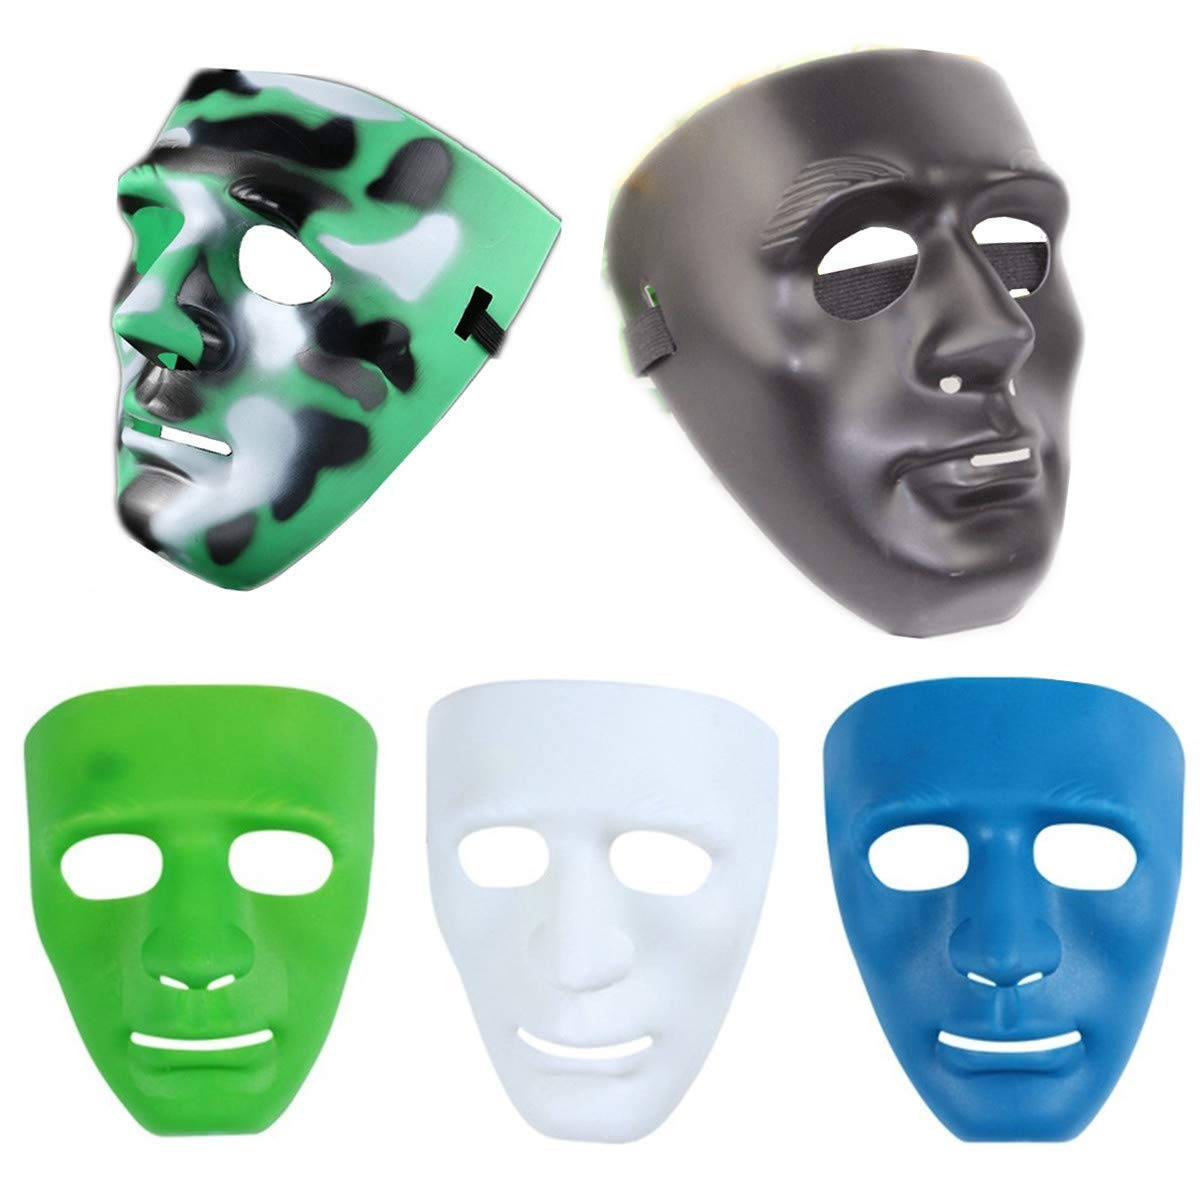 the love 5-Packed (5 Colors Mixing) Halloween Costume Mask Hip-hop Dance Mask for Men